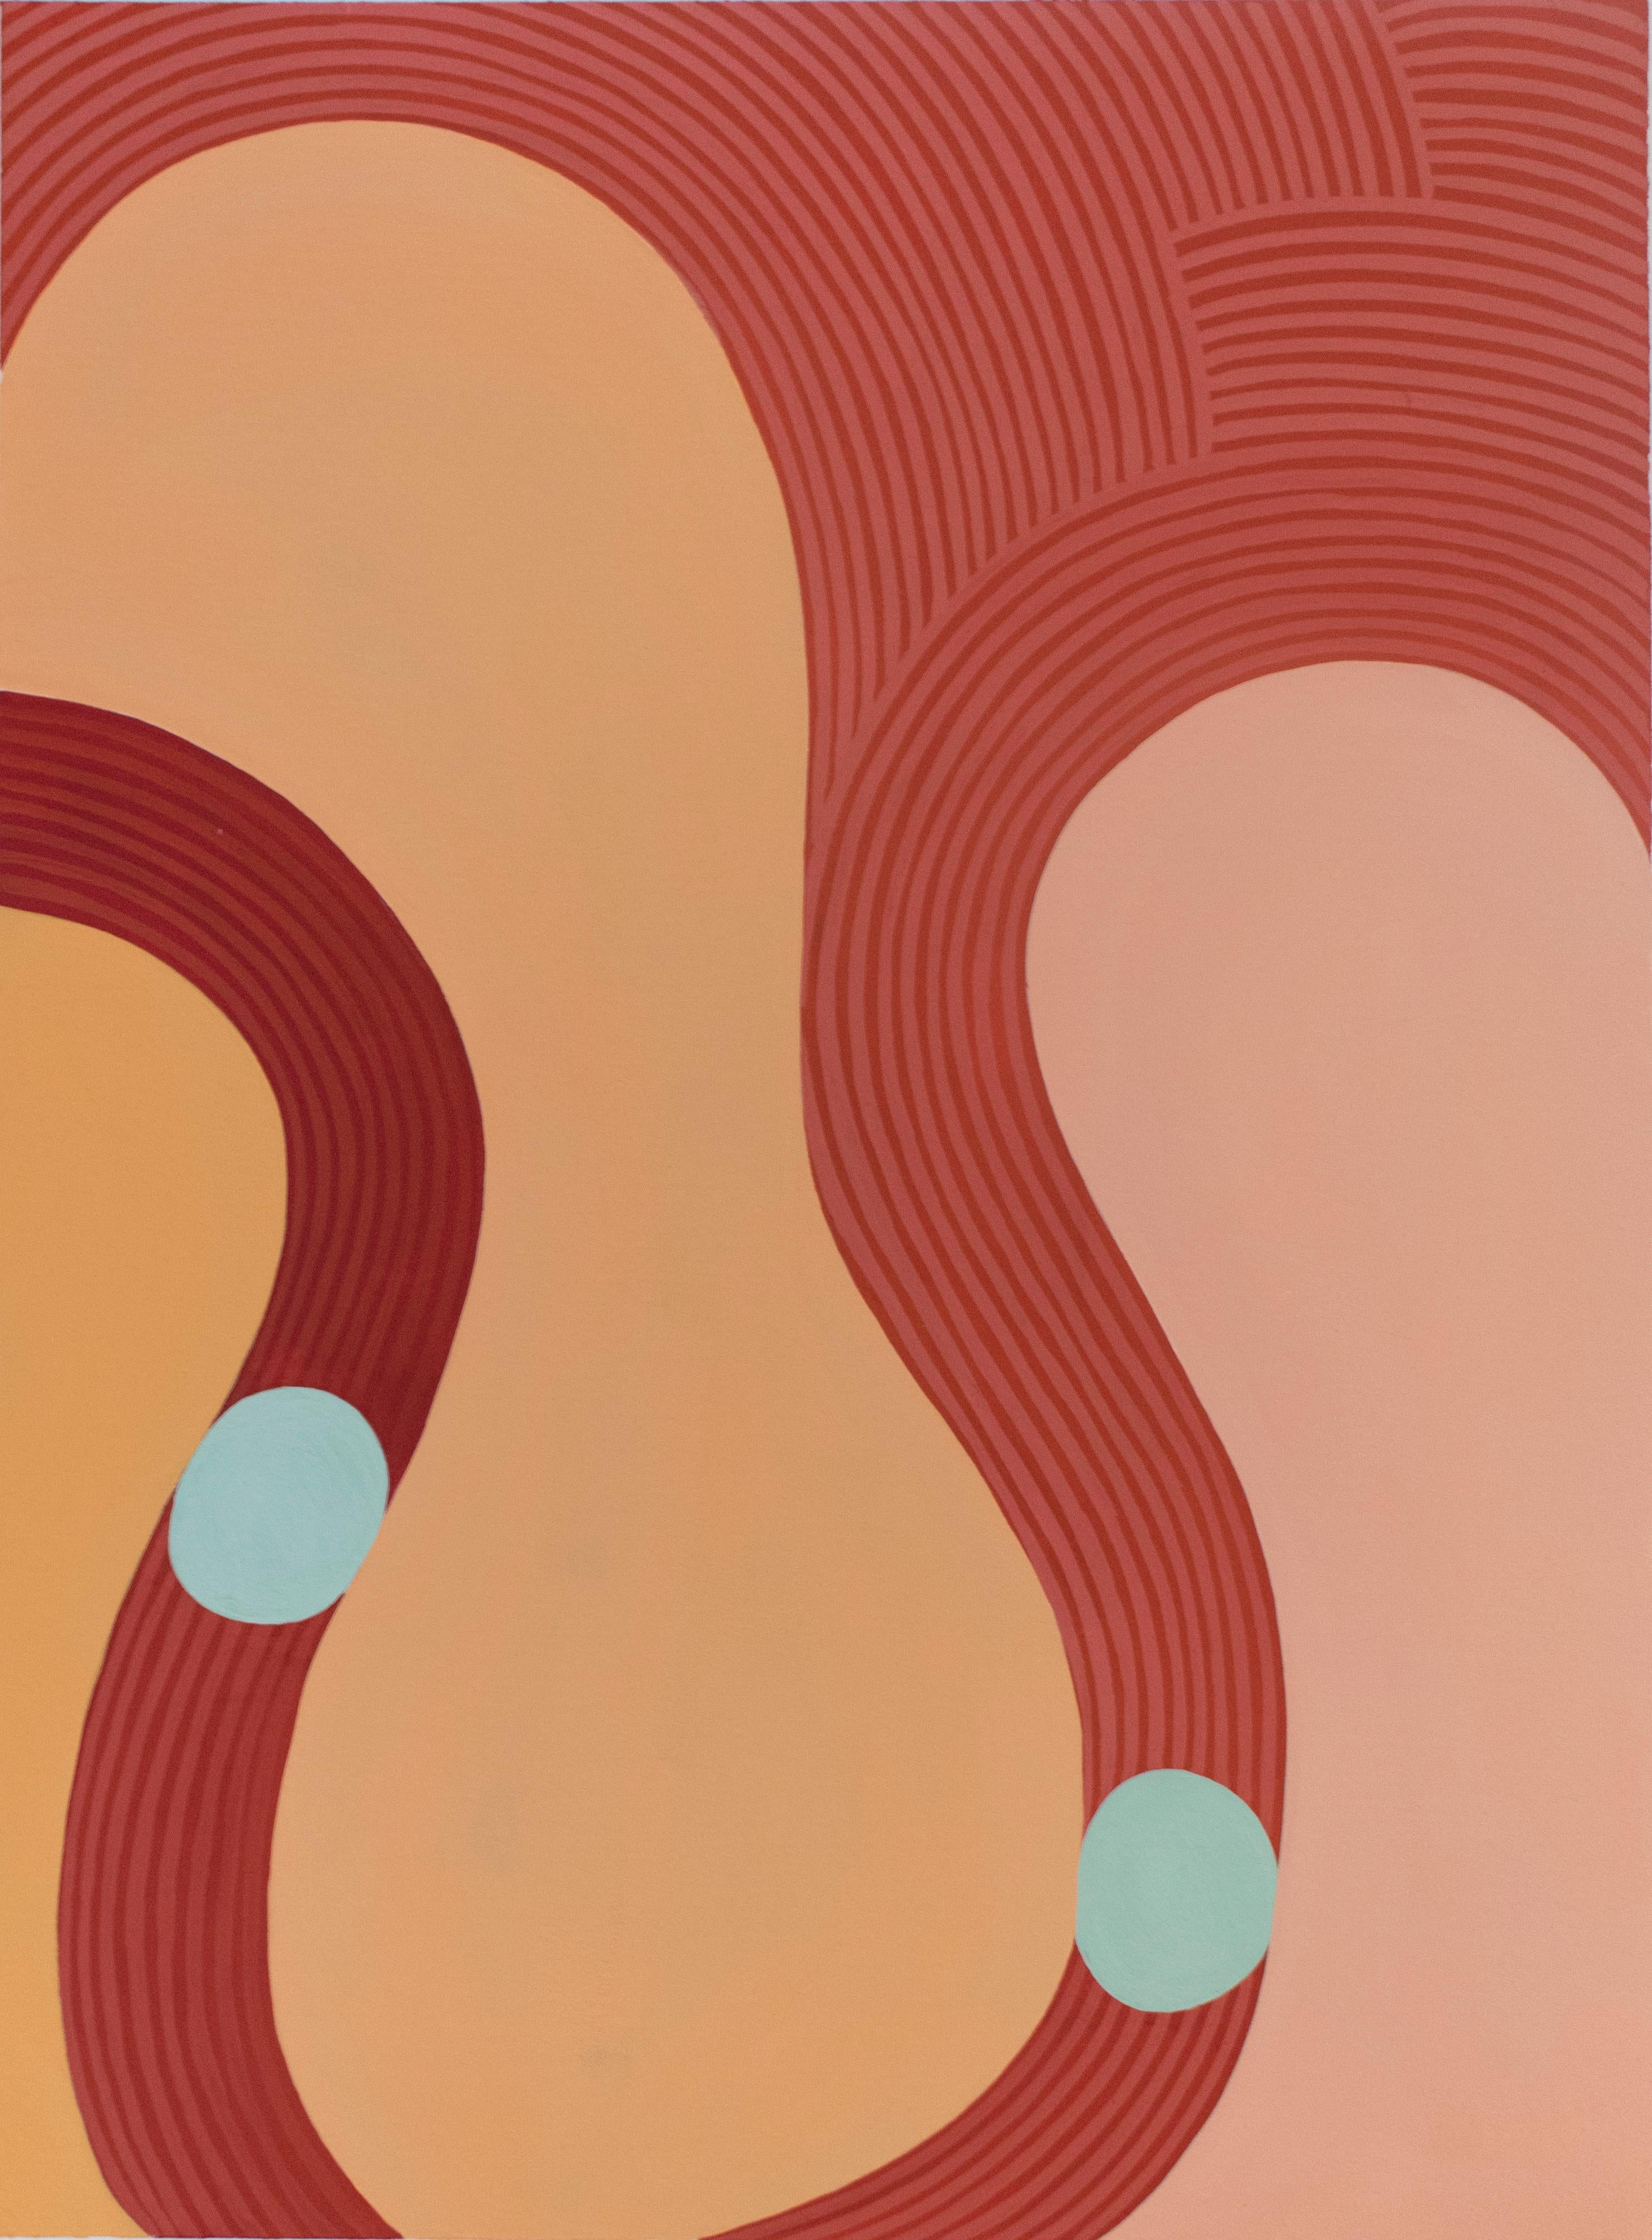 Untitled 1 (Graphic Abstract Painting on Paper in Peach, Red & Light Orange)